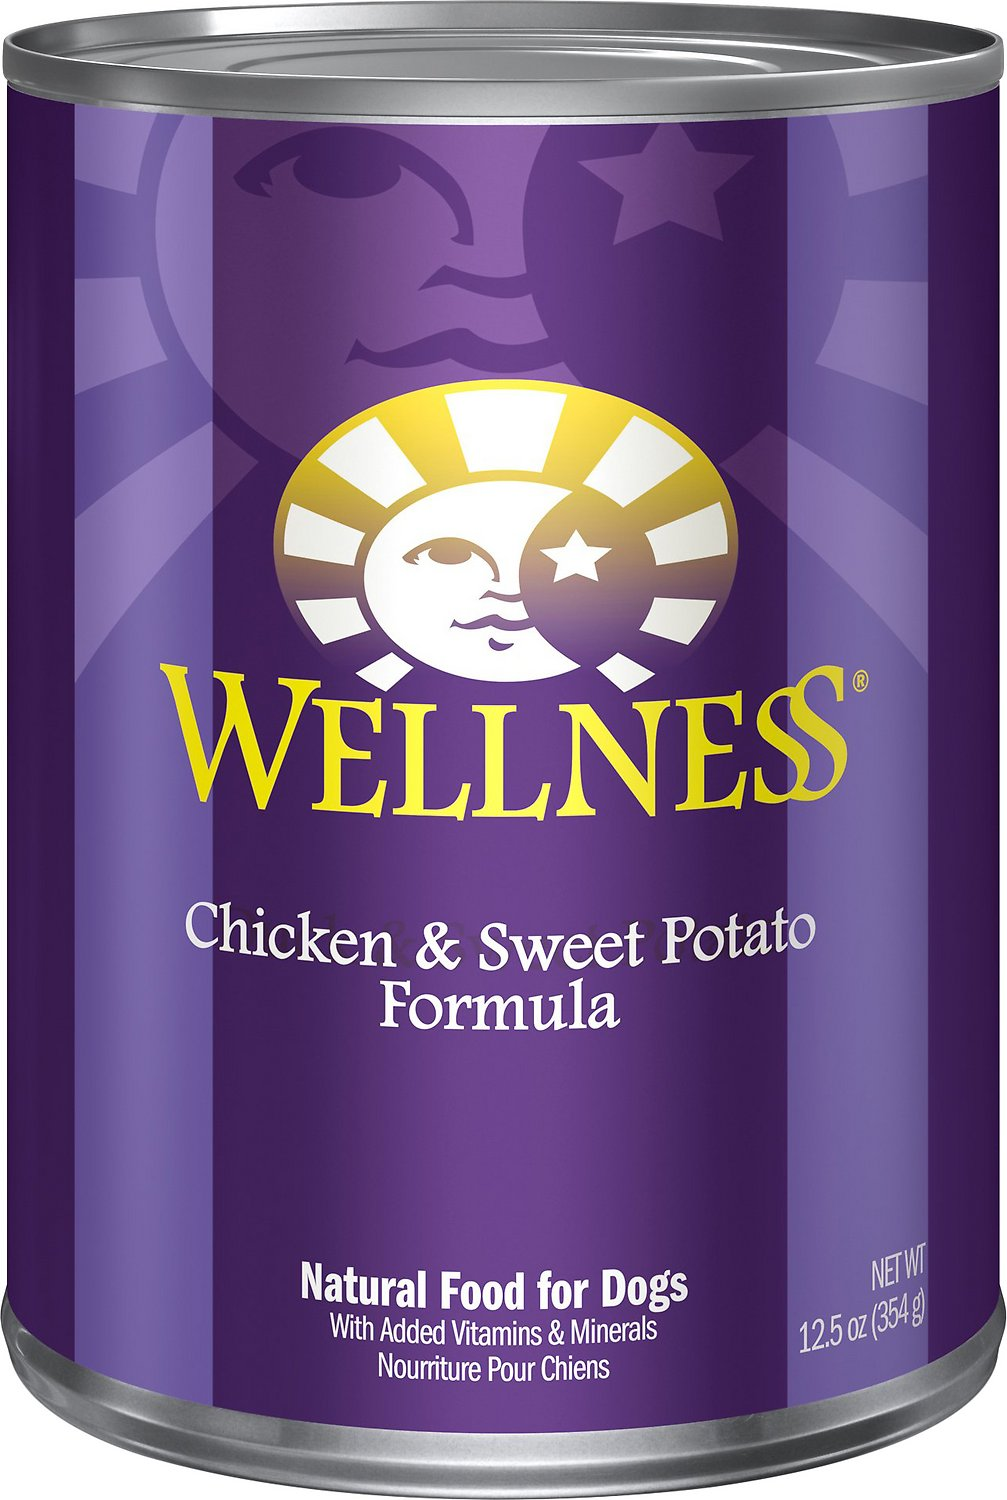 Wellness Complete Health Chicken & Sweet Potato Formula Canned Dog Food, 12.5-oz